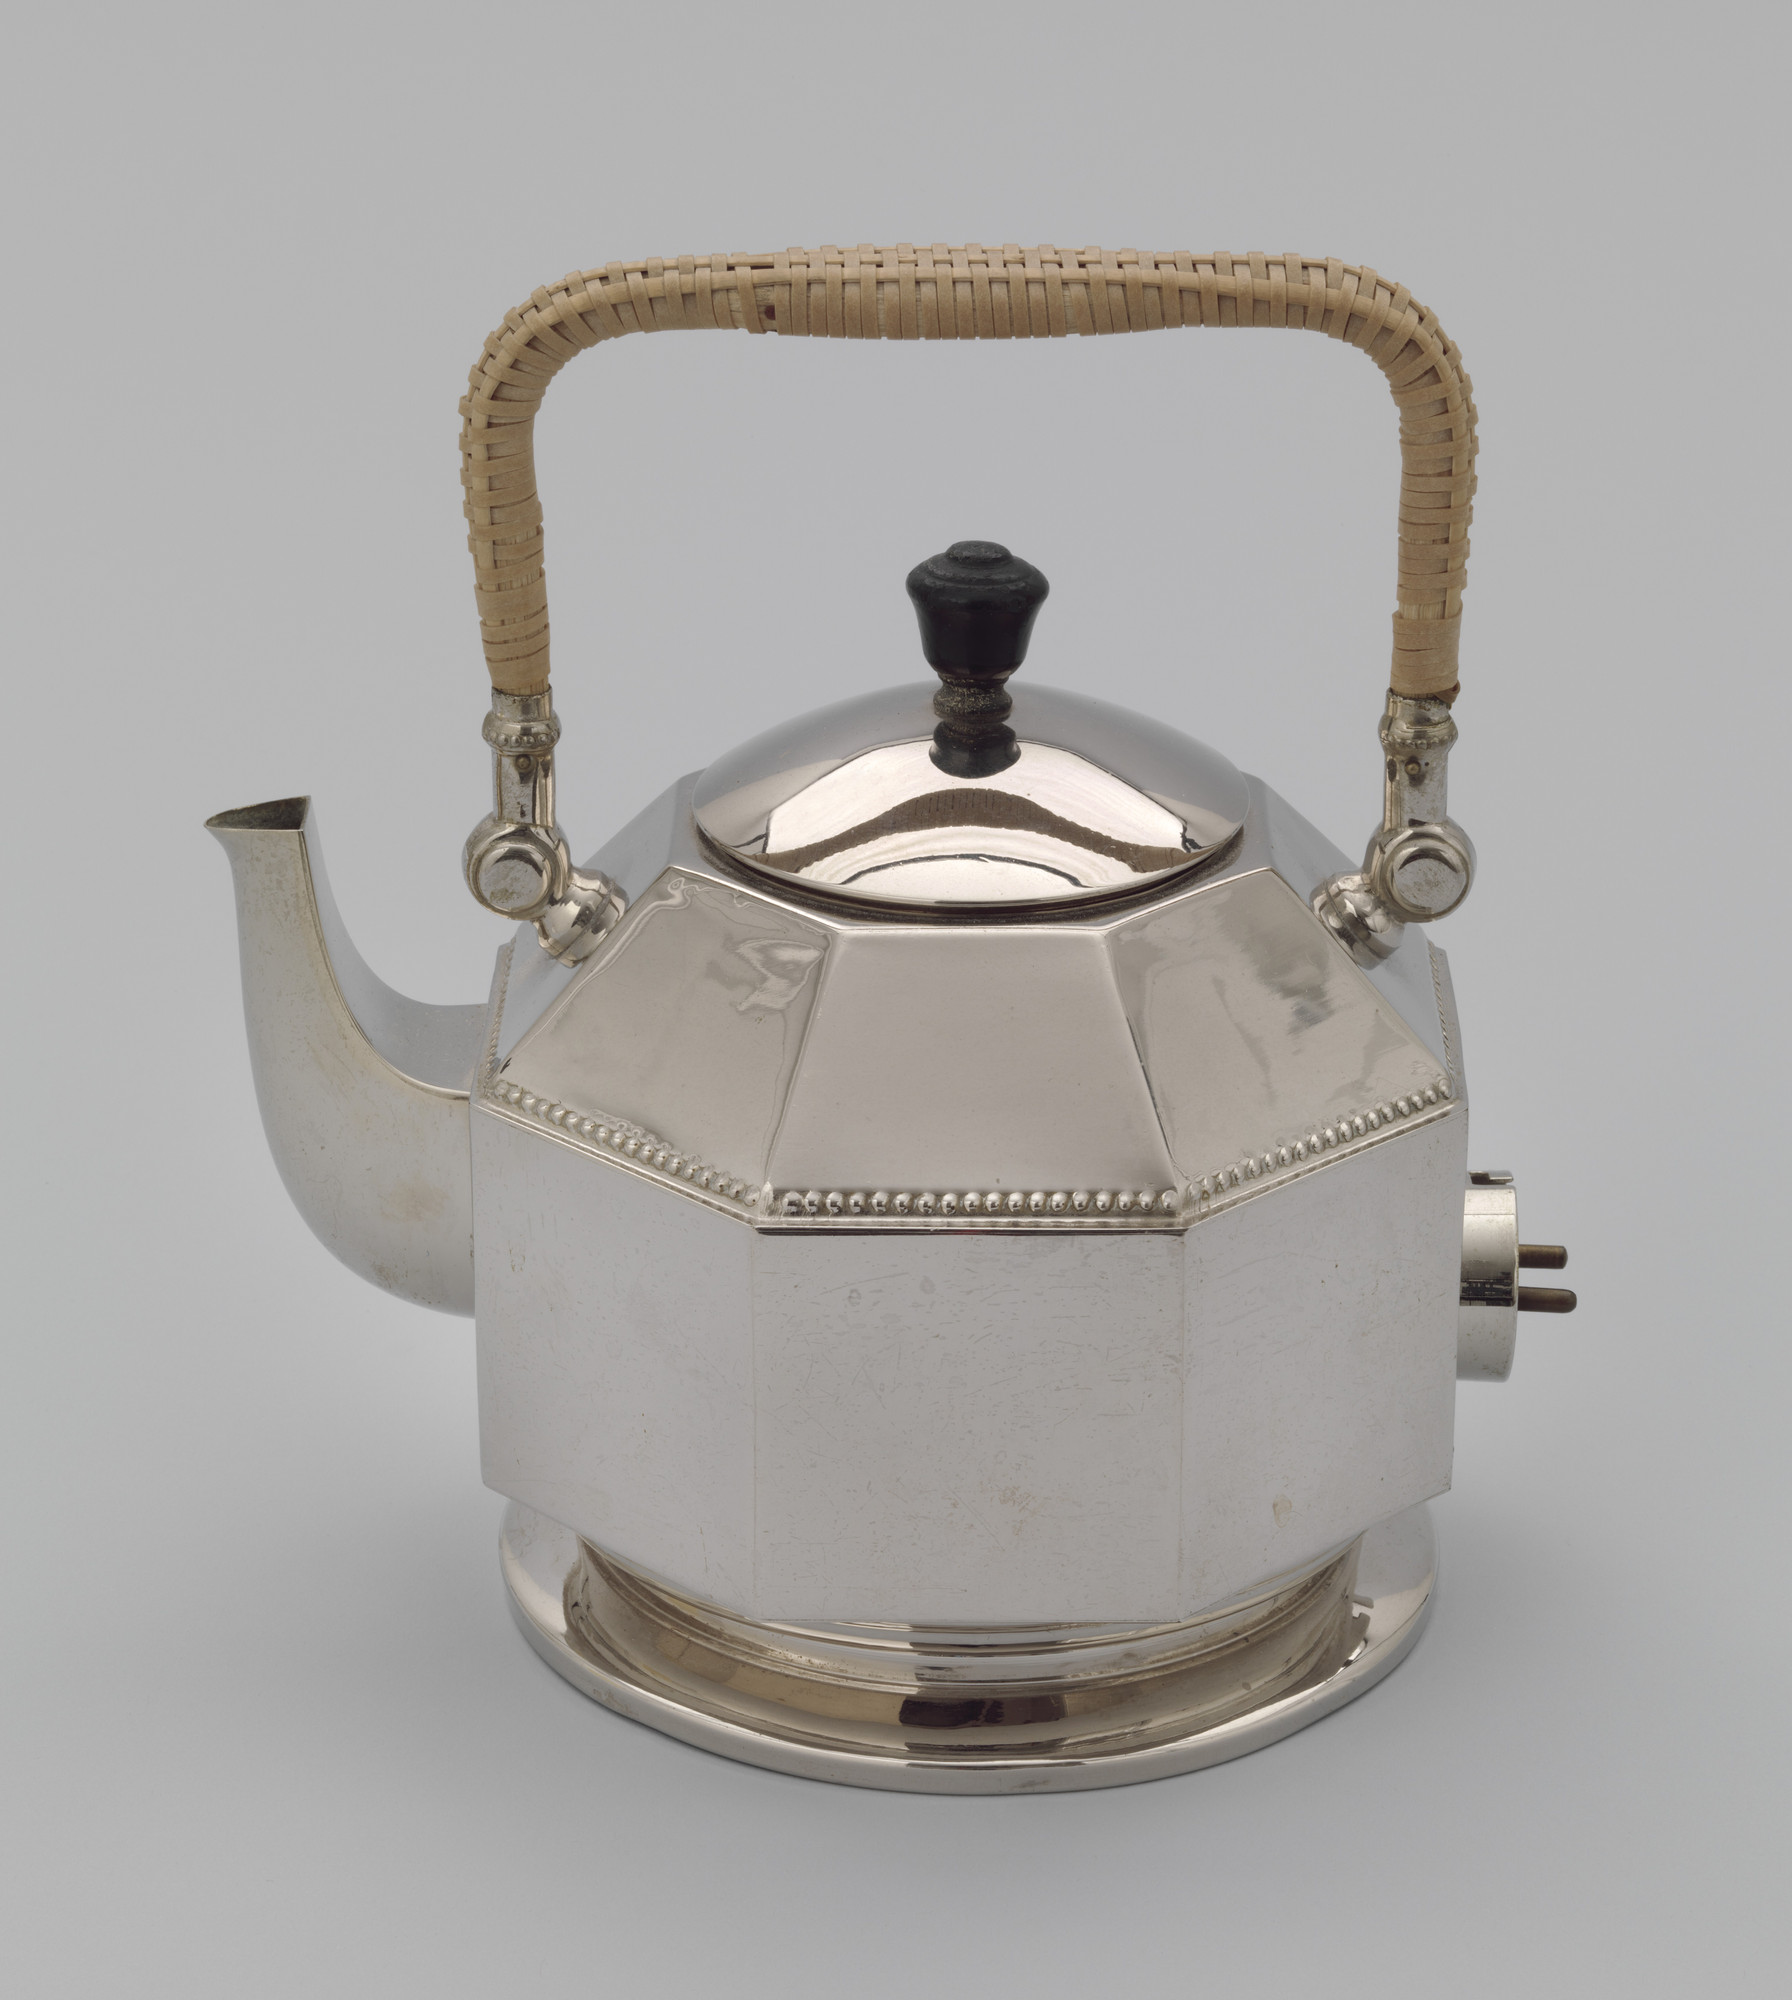 Peter Behrens. Electric Kettle. 1909